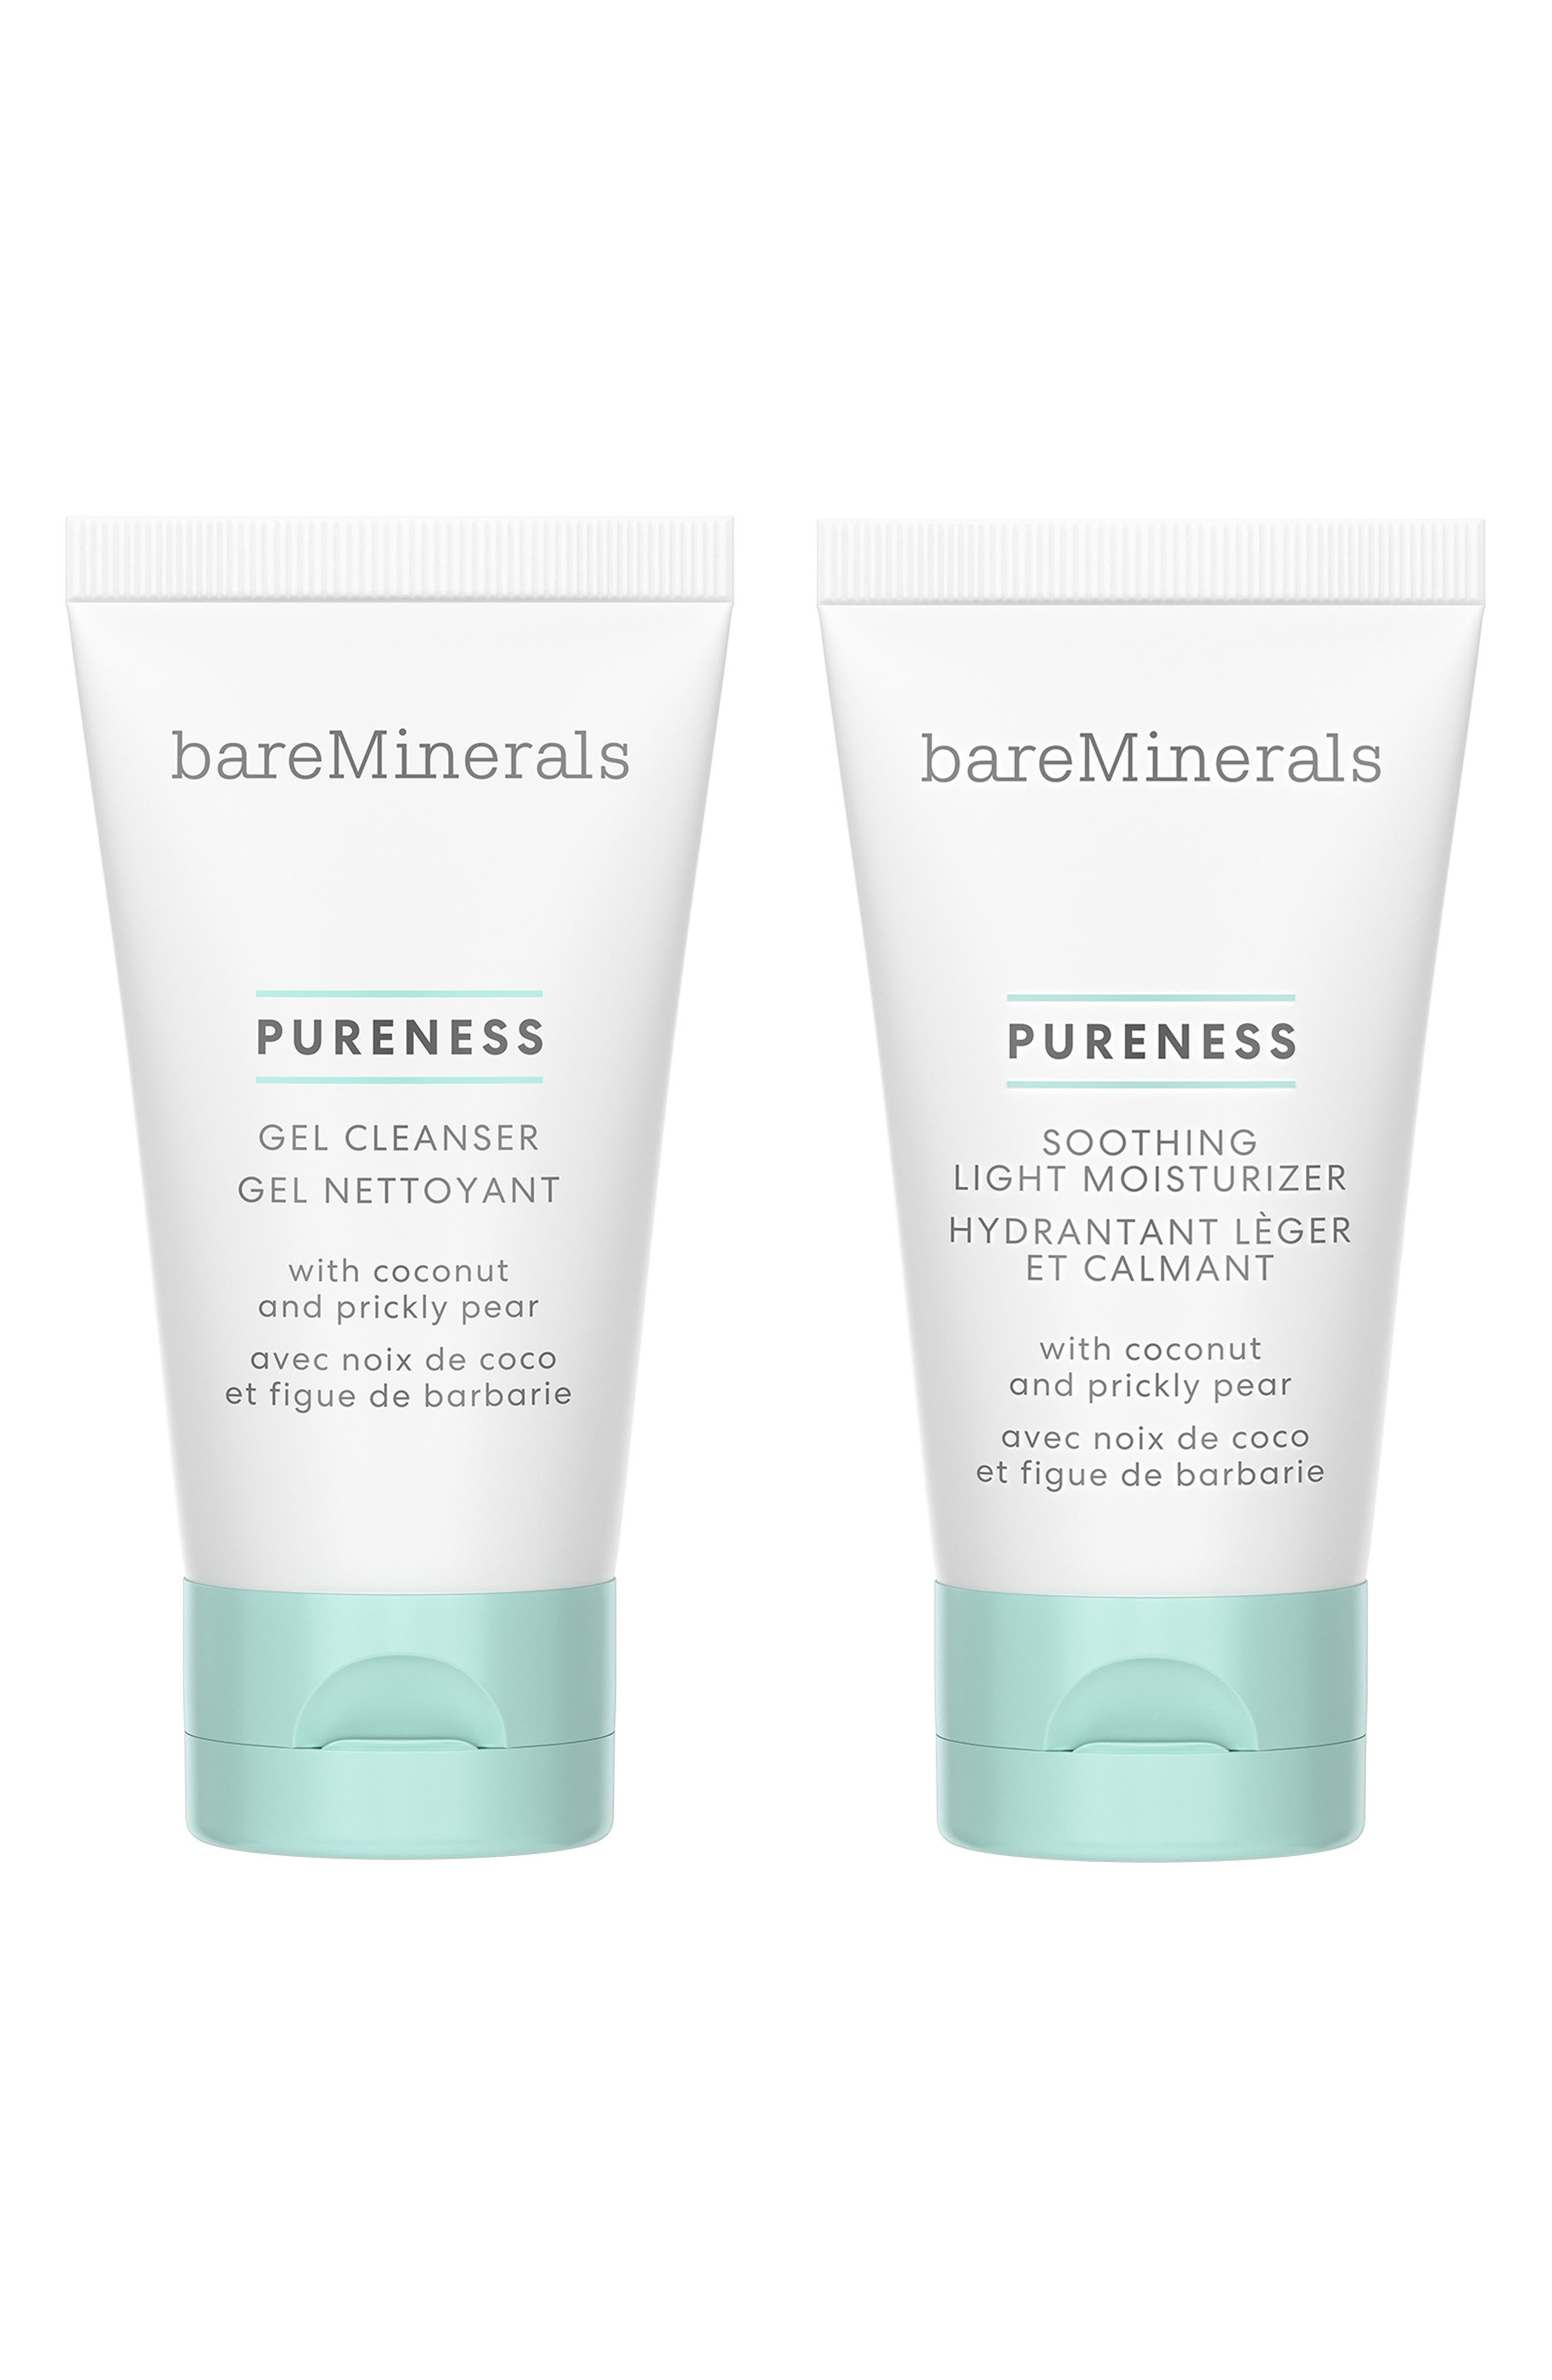 What it is: A limited-edition set featuring travel-size cleansing and hydrating Pureness products by bareMinerals. Who it\\\'s for: All skin types. Set includes:- Travel-size Pureness Gel Cleanser (1 oz.): a daily gel cleanser that gently removes makeup, impurities and excess oil without stripping the skin- Travel-size Pureness Soothing Light Moisturizer (1 oz.): a lightweight daily moisturizer that reduces the look of redness and sensitivity on